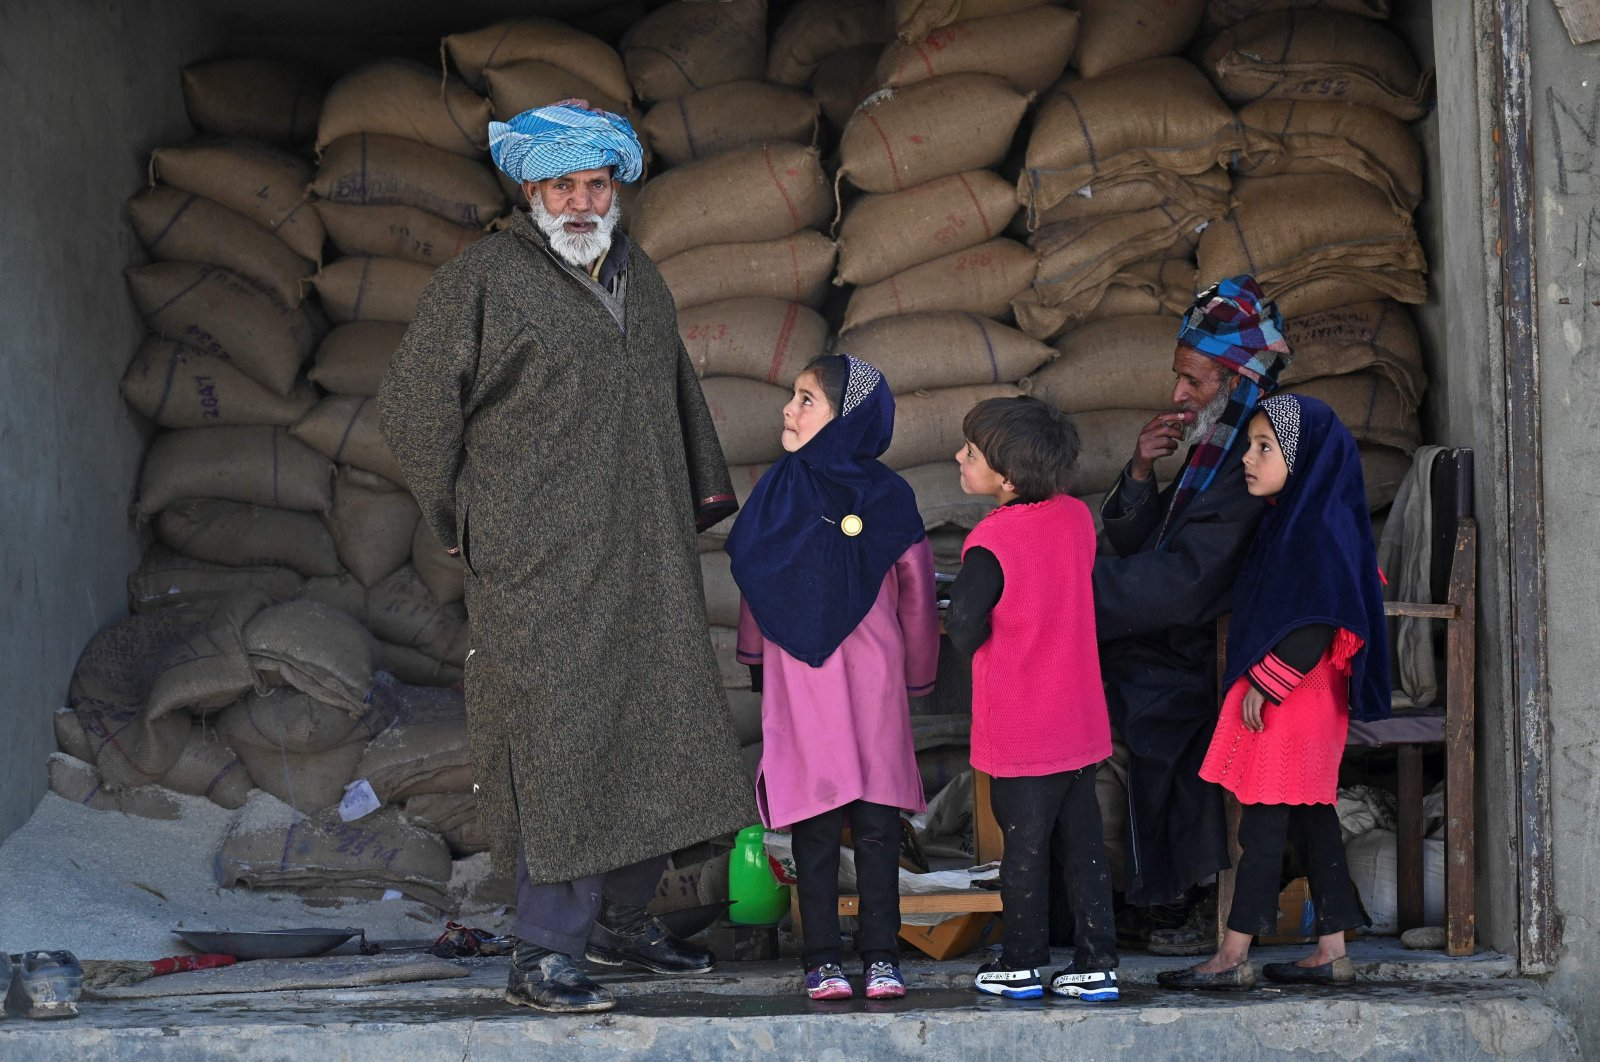 People are seen inside a ration shop where residents have been served notices to provide ownership proof of their houses by the government forest officials in the Nagbal area in Indian-administered Kashmir, Dec. 15, 2020. (AFP Photo)